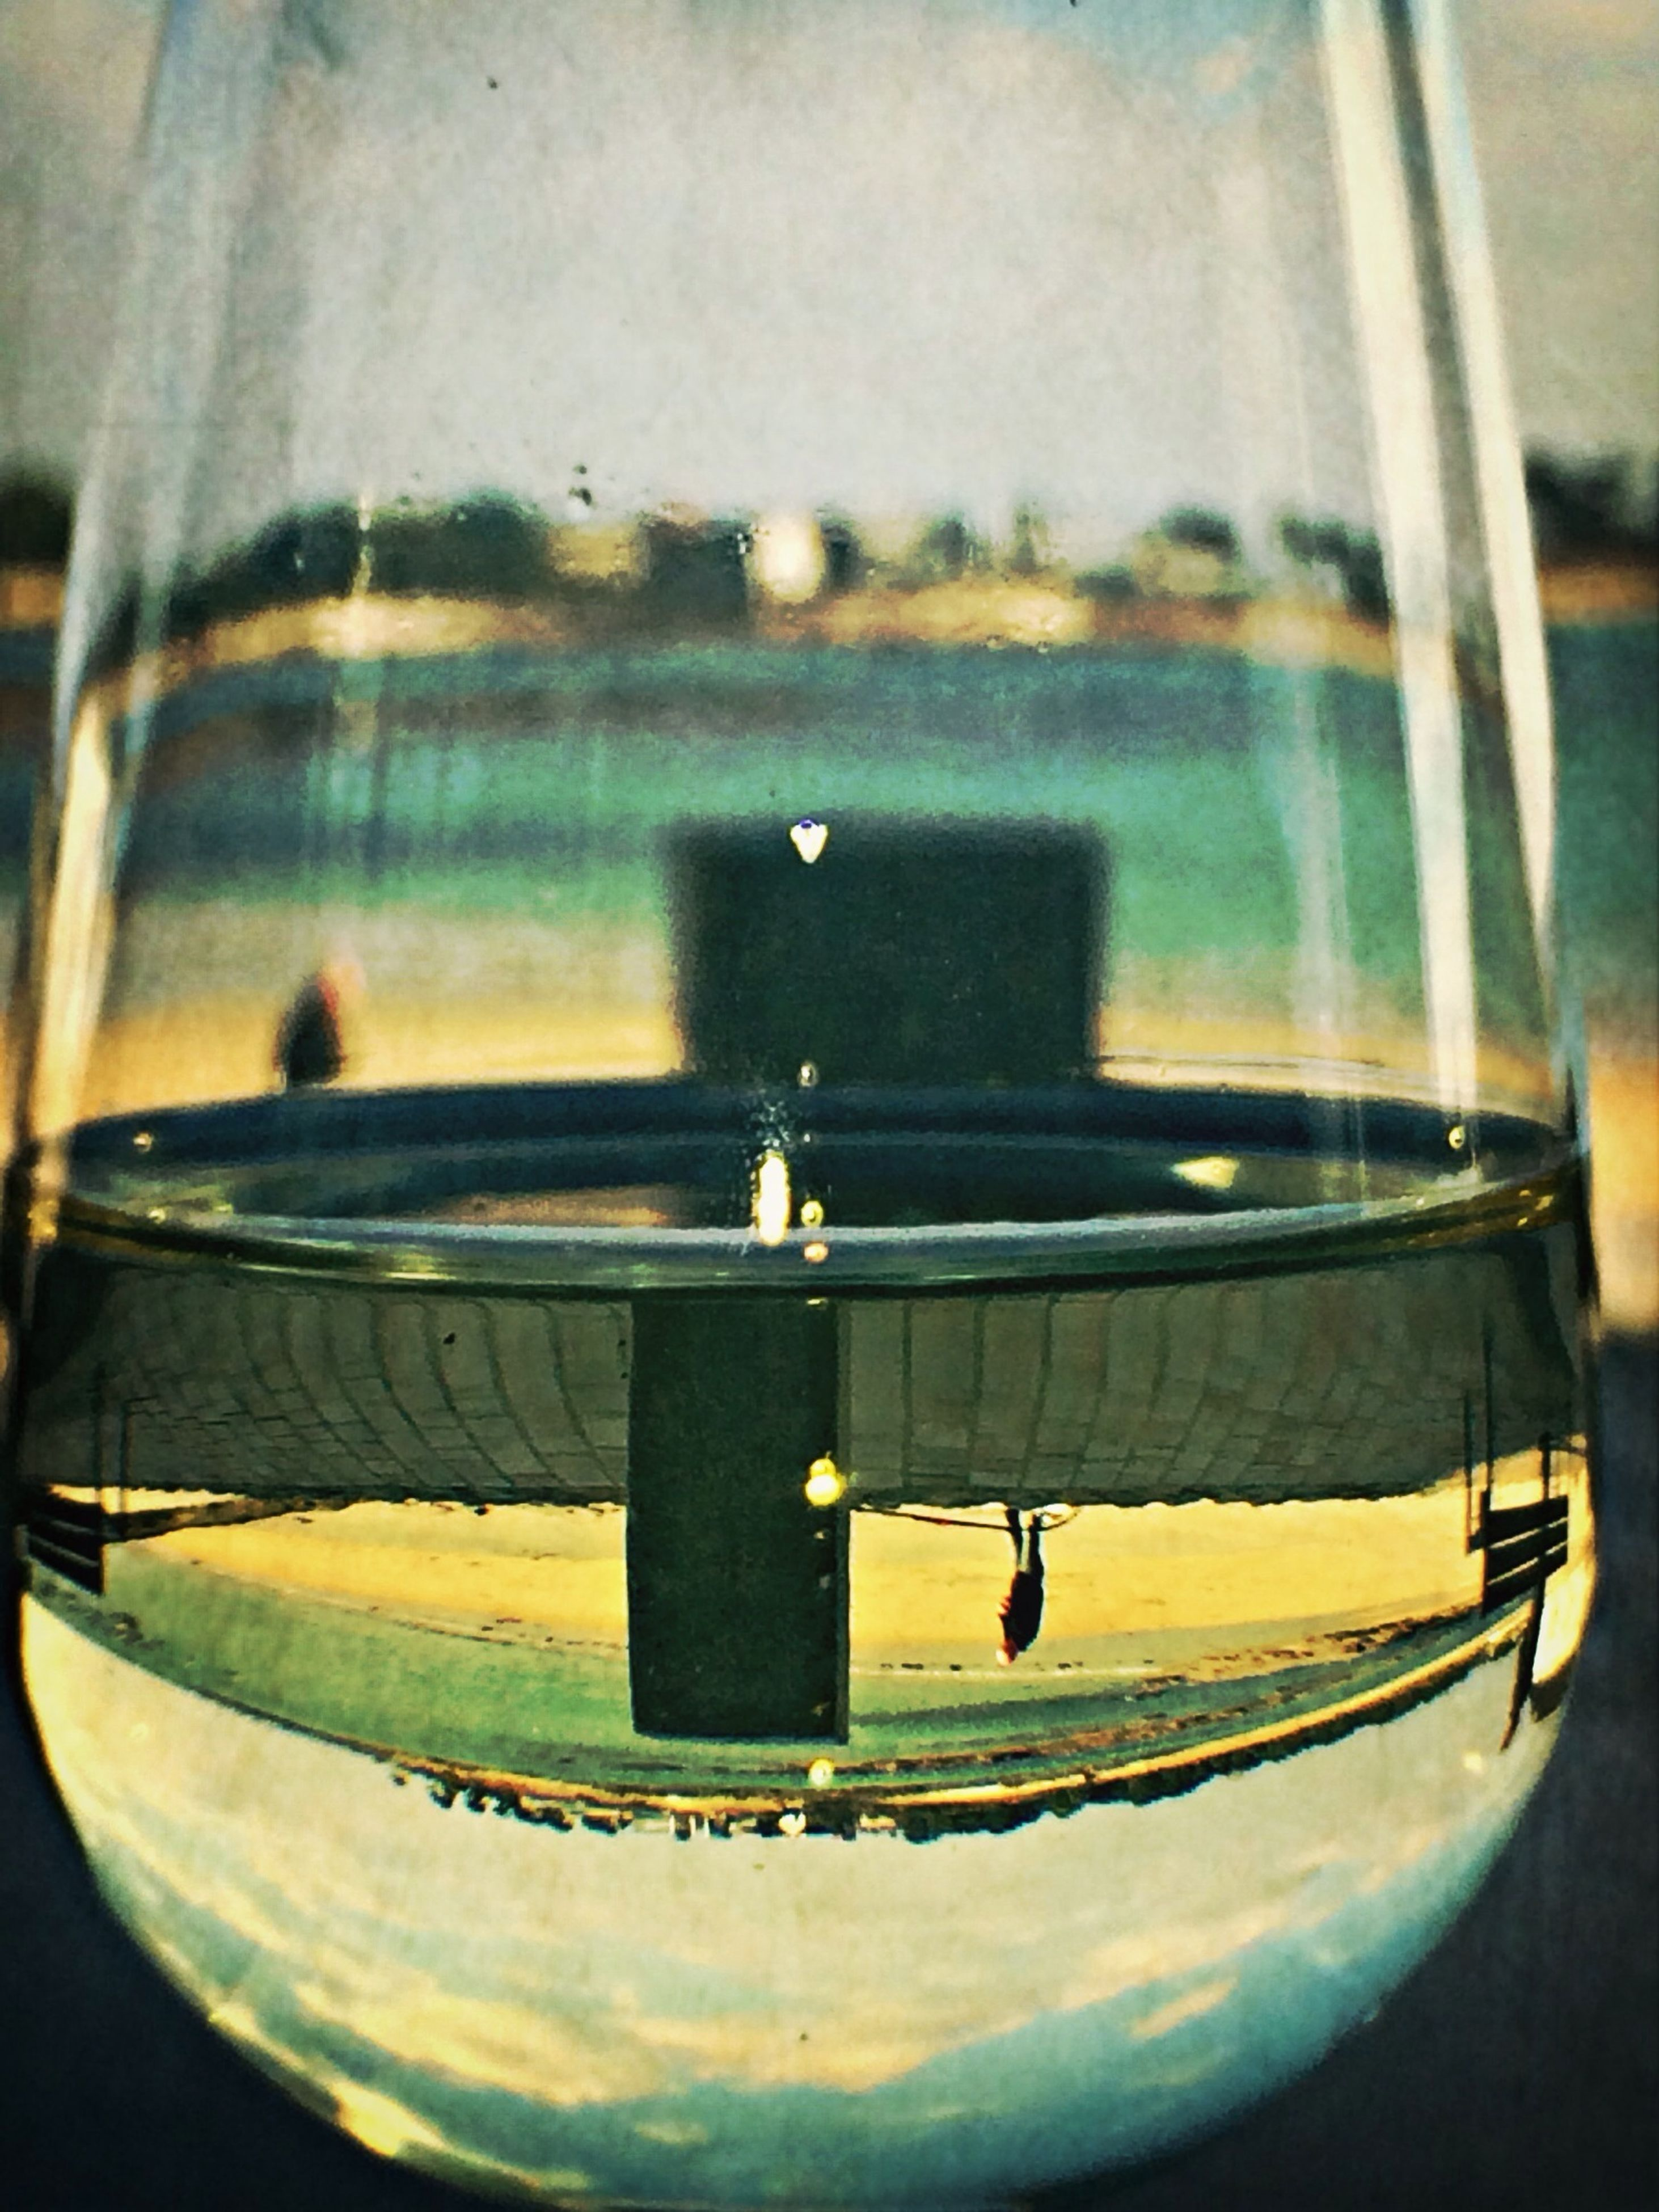 glass - material, indoors, transparent, focus on foreground, close-up, reflection, water, table, drinking glass, glass, still life, drop, no people, selective focus, window, refreshment, transportation, day, drink, wineglass